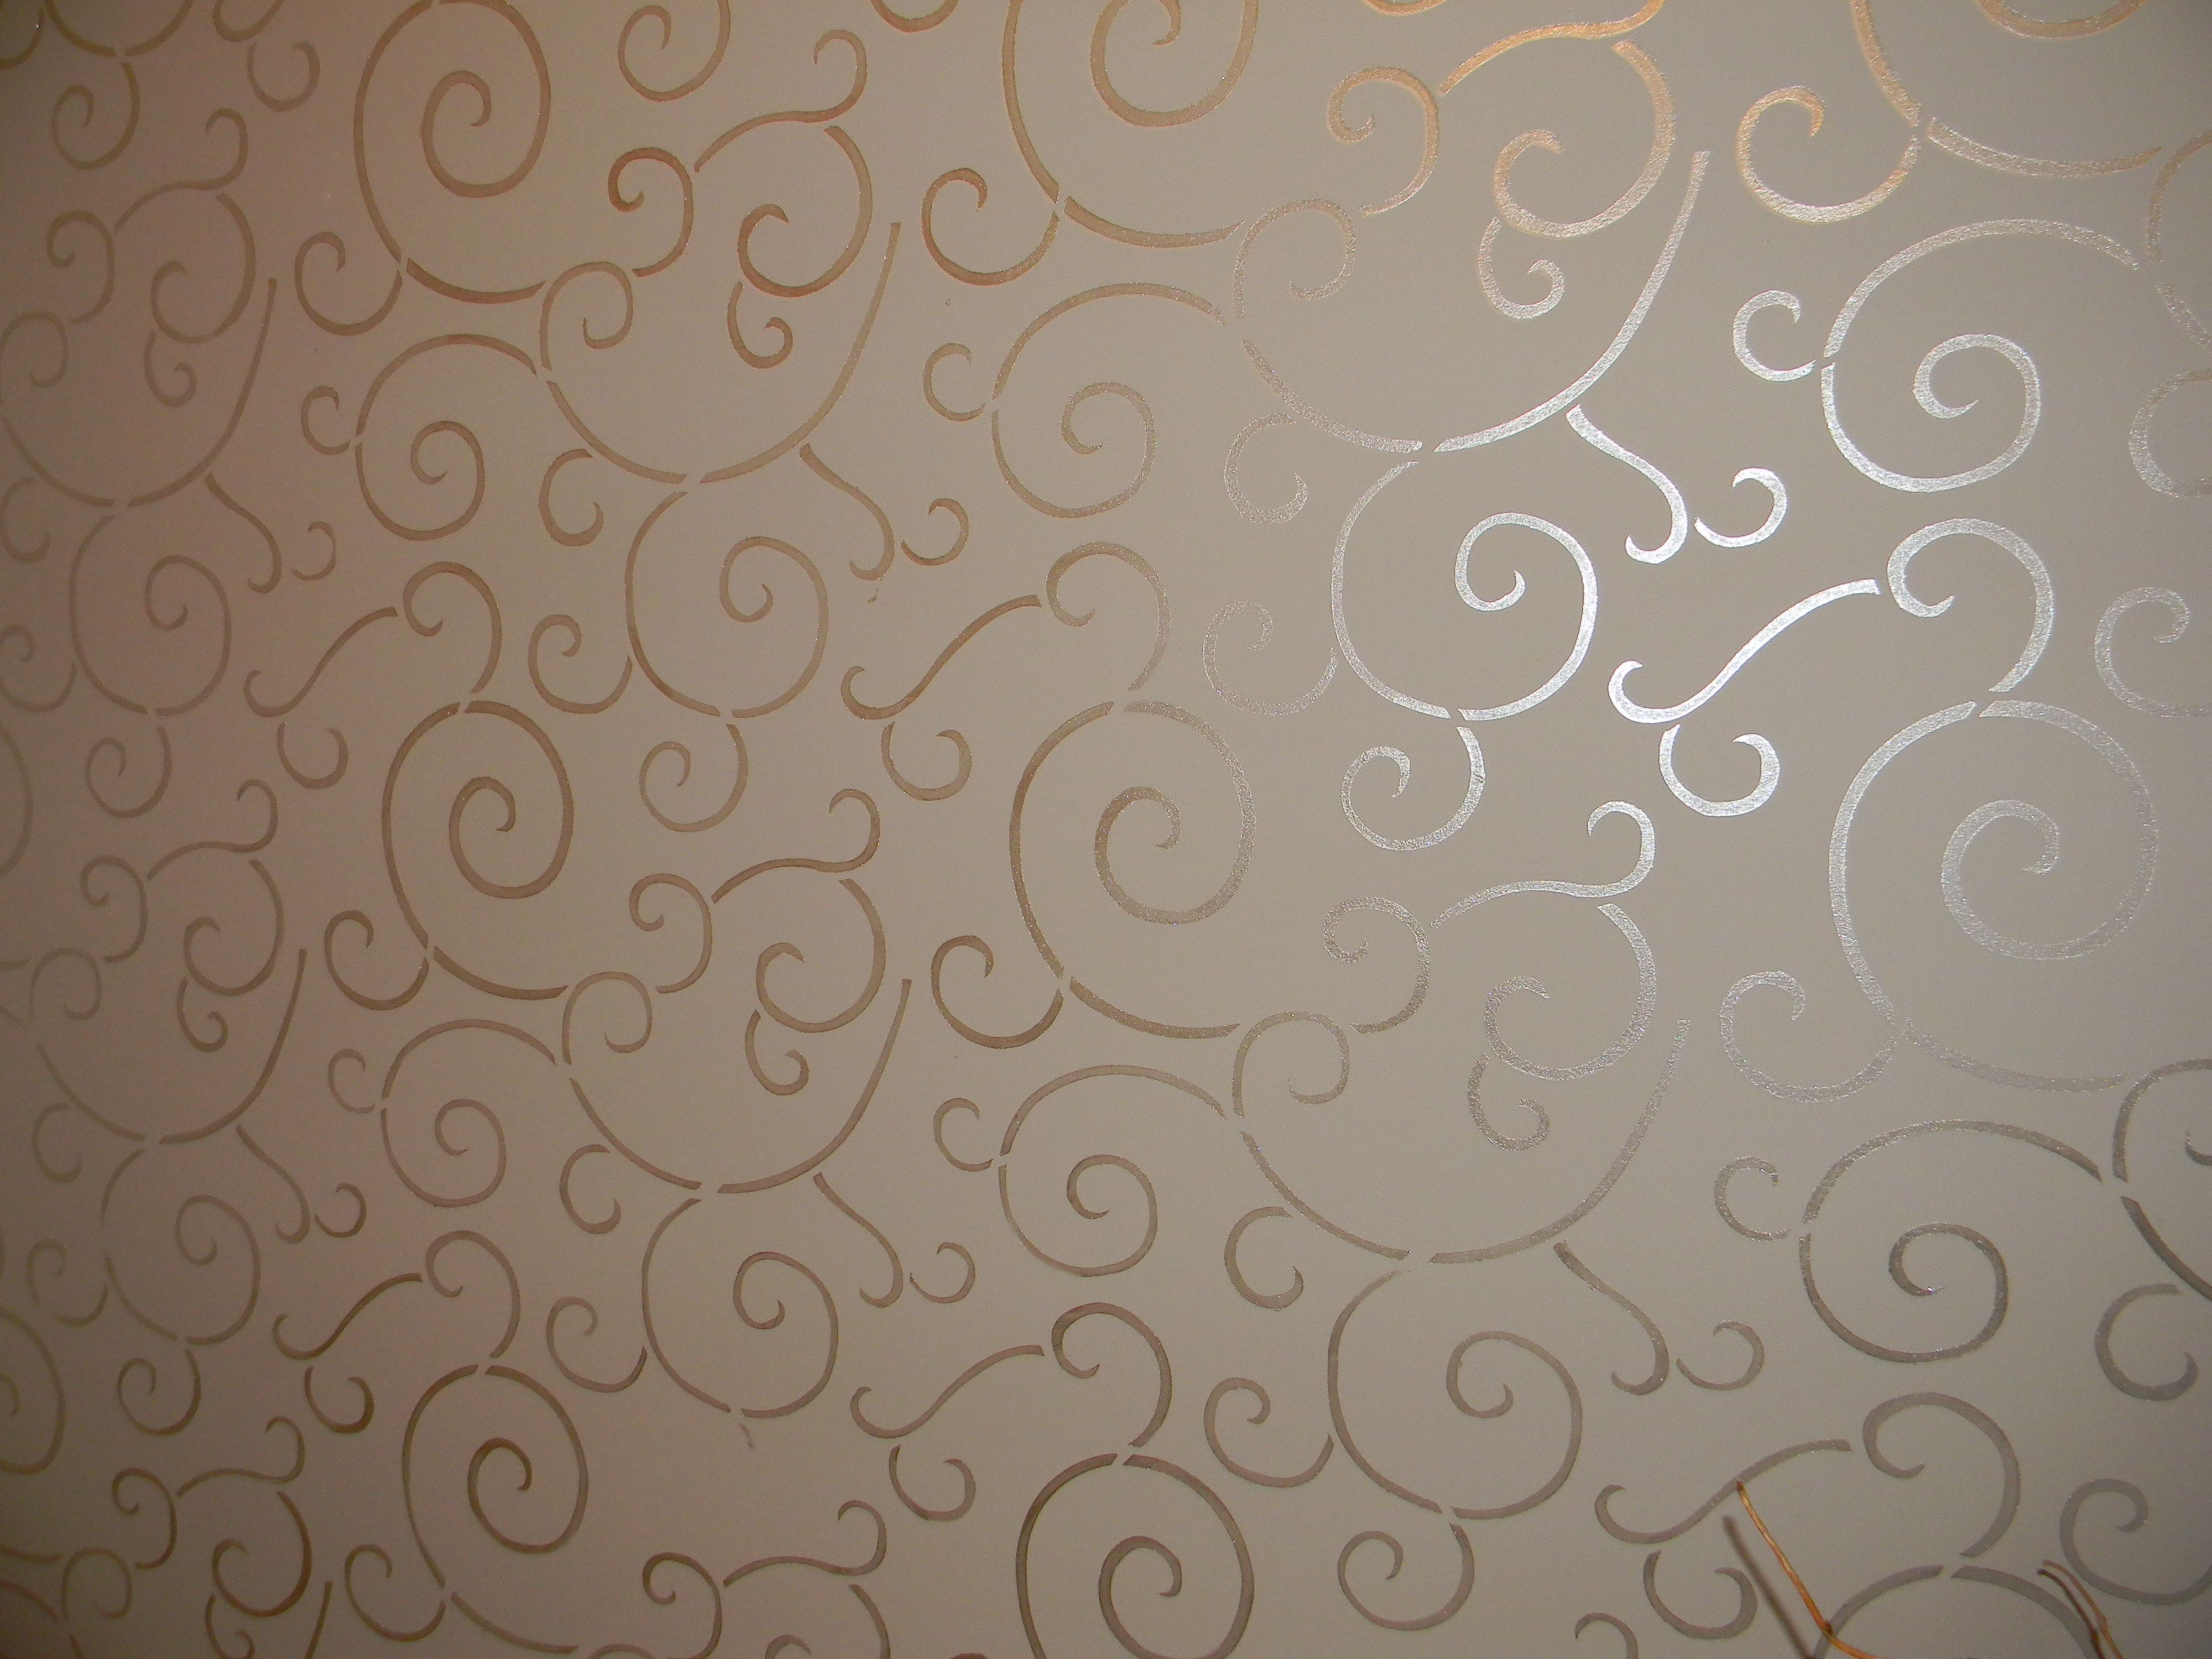 Wall stenciled with metallic paint gives the look of - Metallic paint wall designs ...